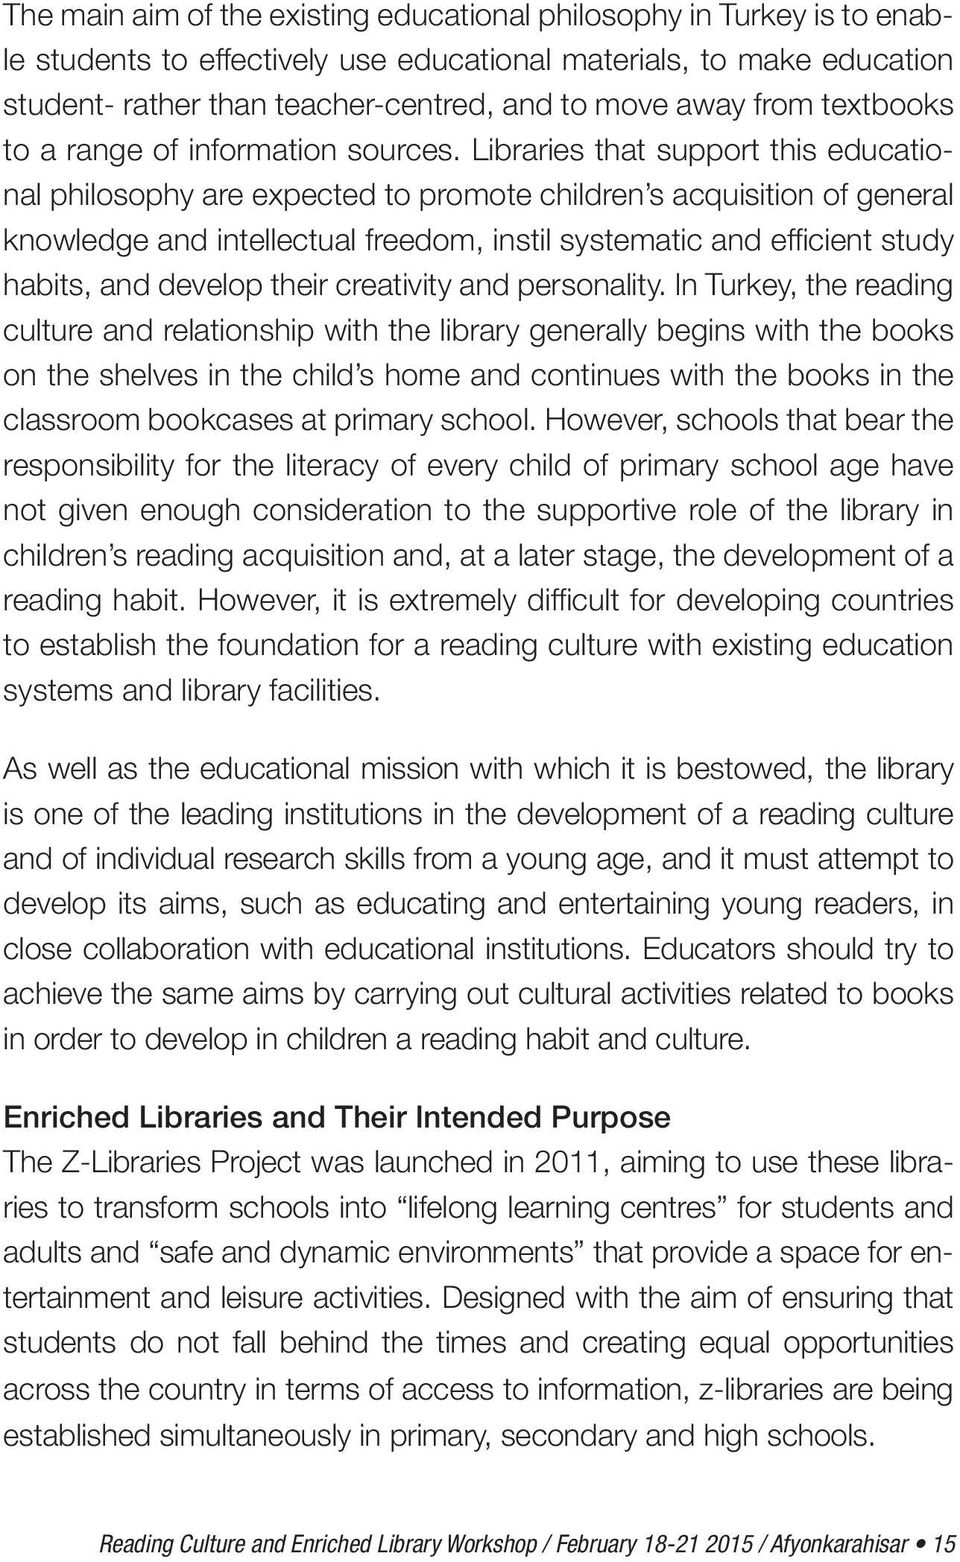 Libraries that support this educational philosophy are expected to promote children s acquisition of general knowledge and intellectual freedom, instil systematic and efficient study habits, and